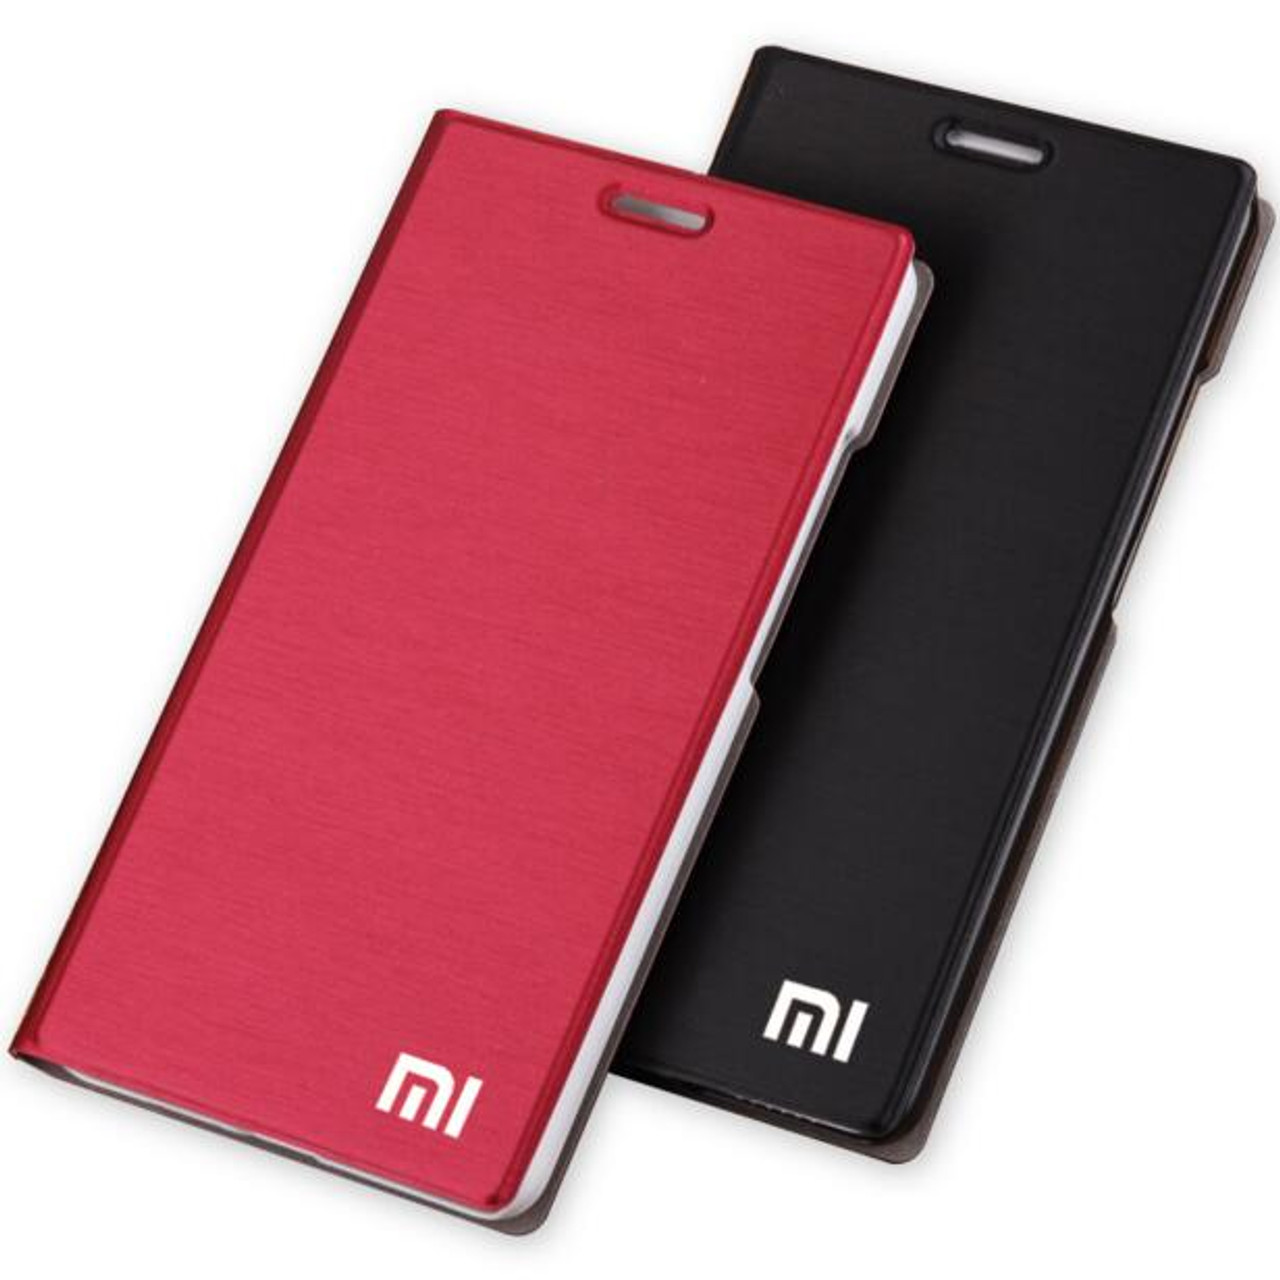 new products de51e e35e2 Xiaomi mi redmi note 4 4x 4A Case Leather Cover Luxury Flip Stand Original  For Xiaomi redmi 4X 4A pro 4X Prime ,OEM product Case